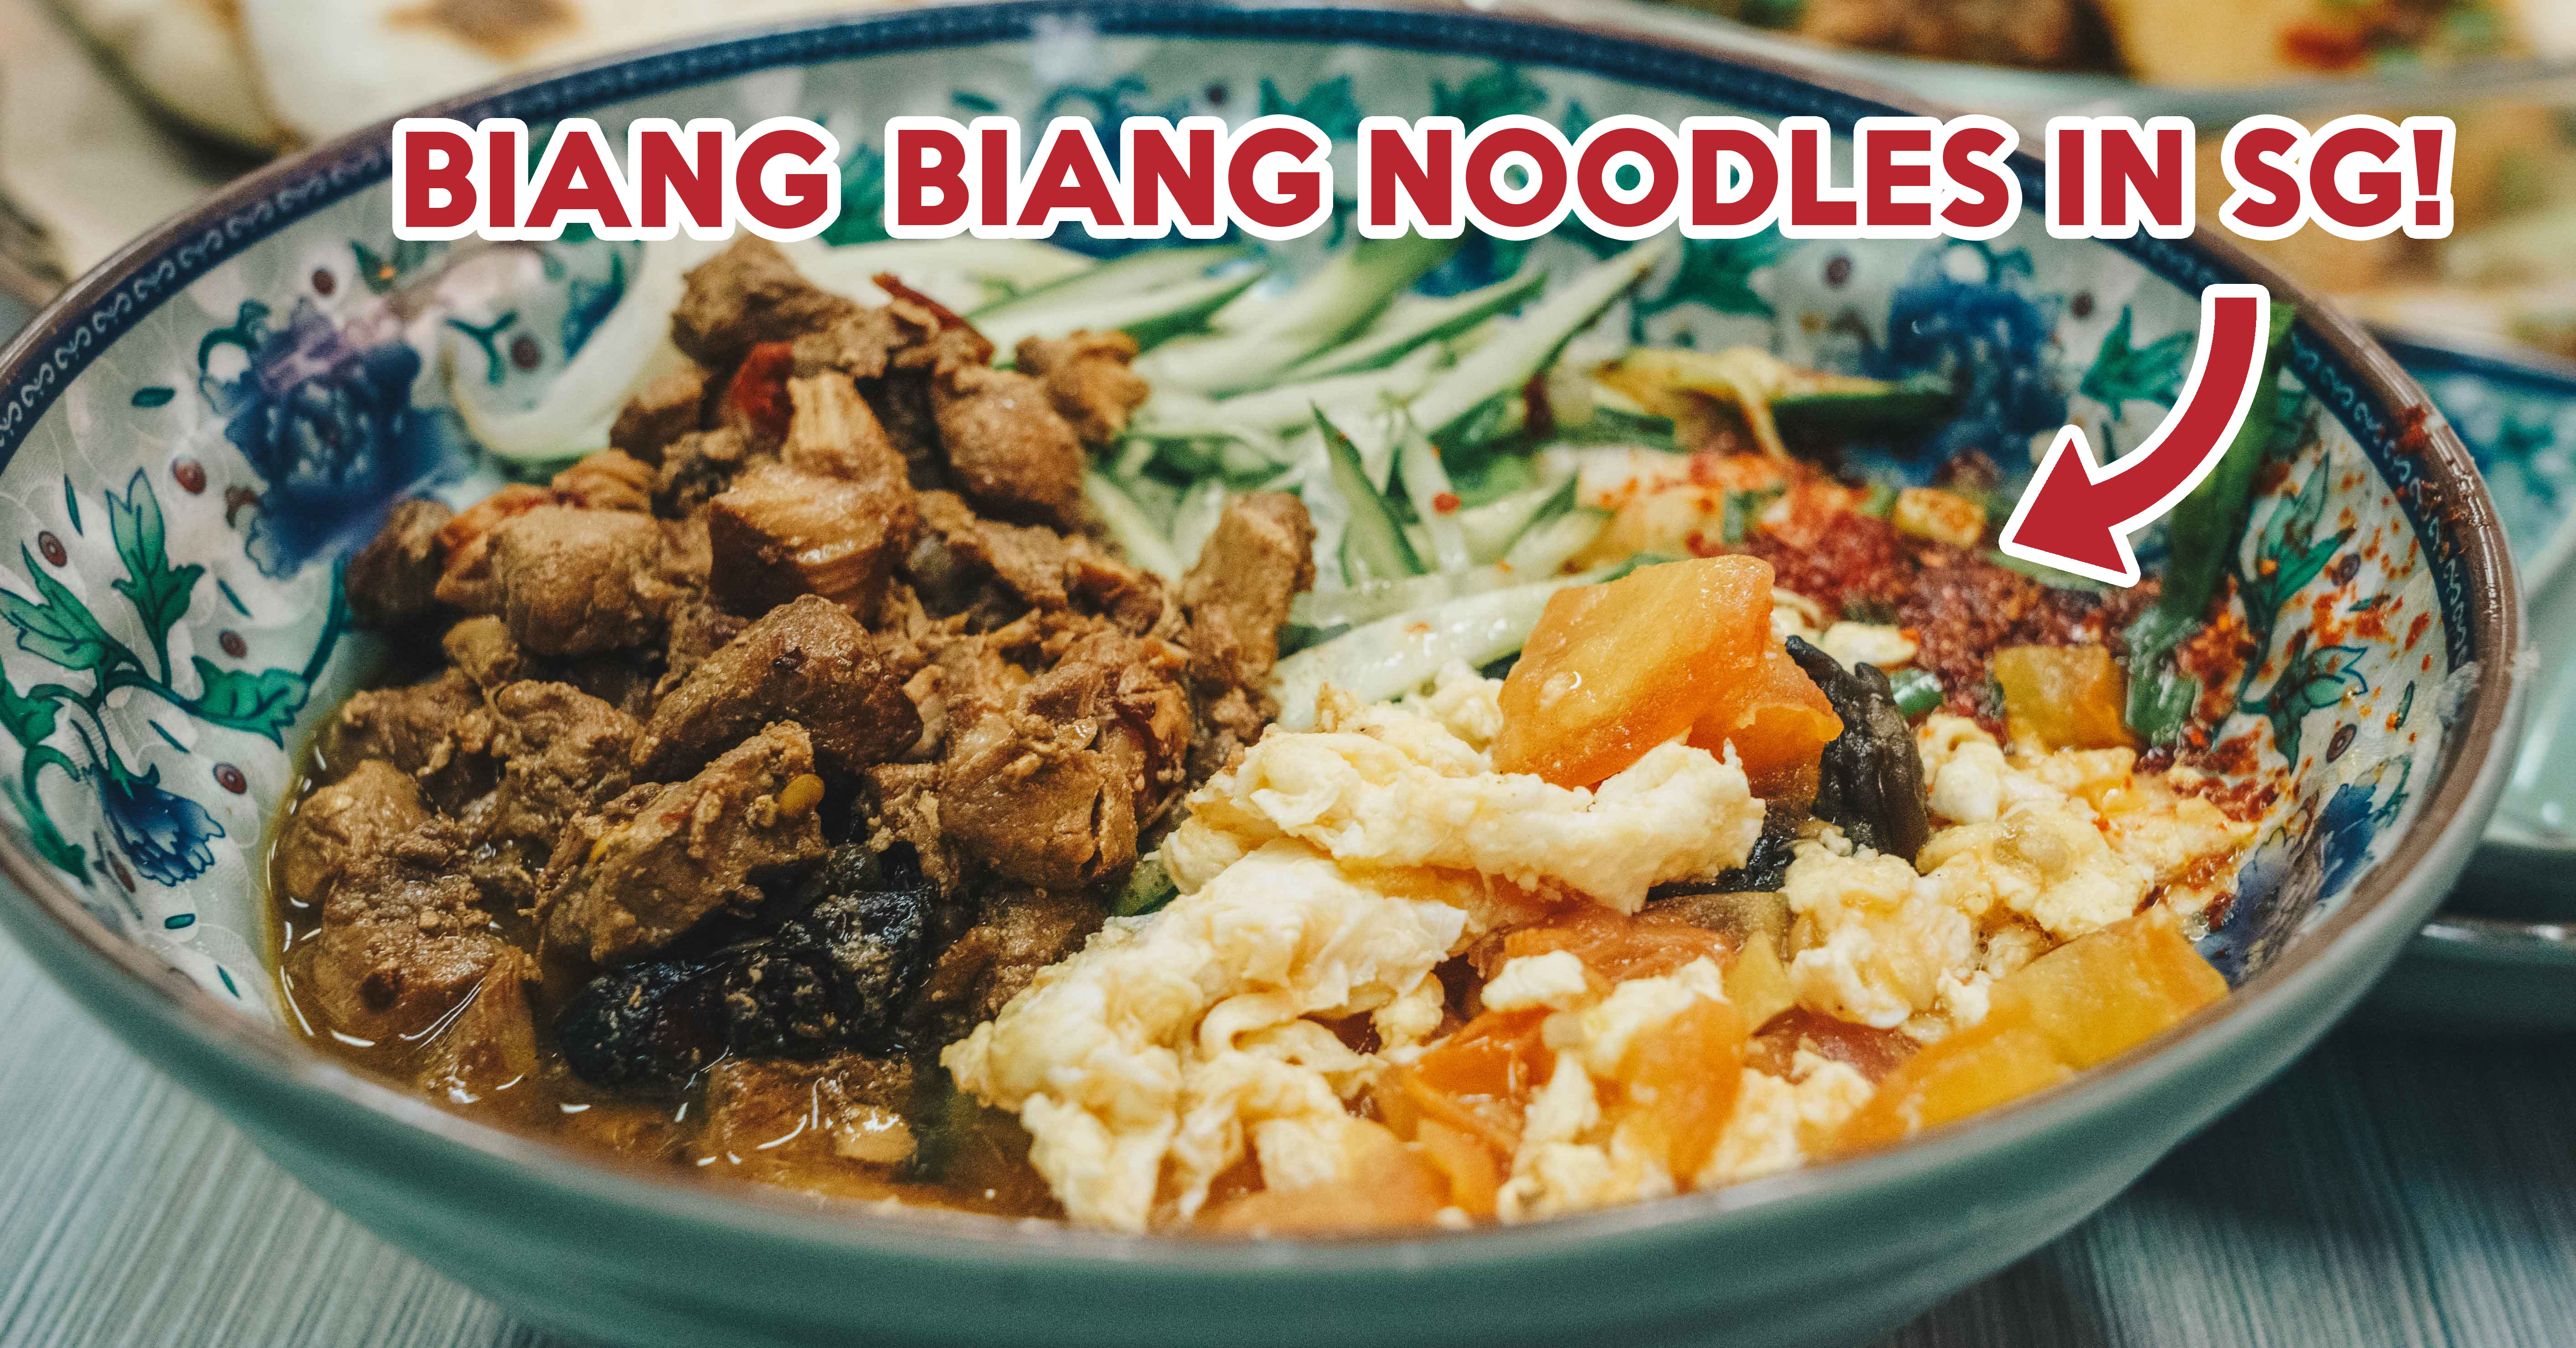 Biang biang noodles xian famous food review biang biang noodles biang biang noodles xian famous food review biang biang noodles and rou jia mo at toa payoh eatbook forumfinder Images